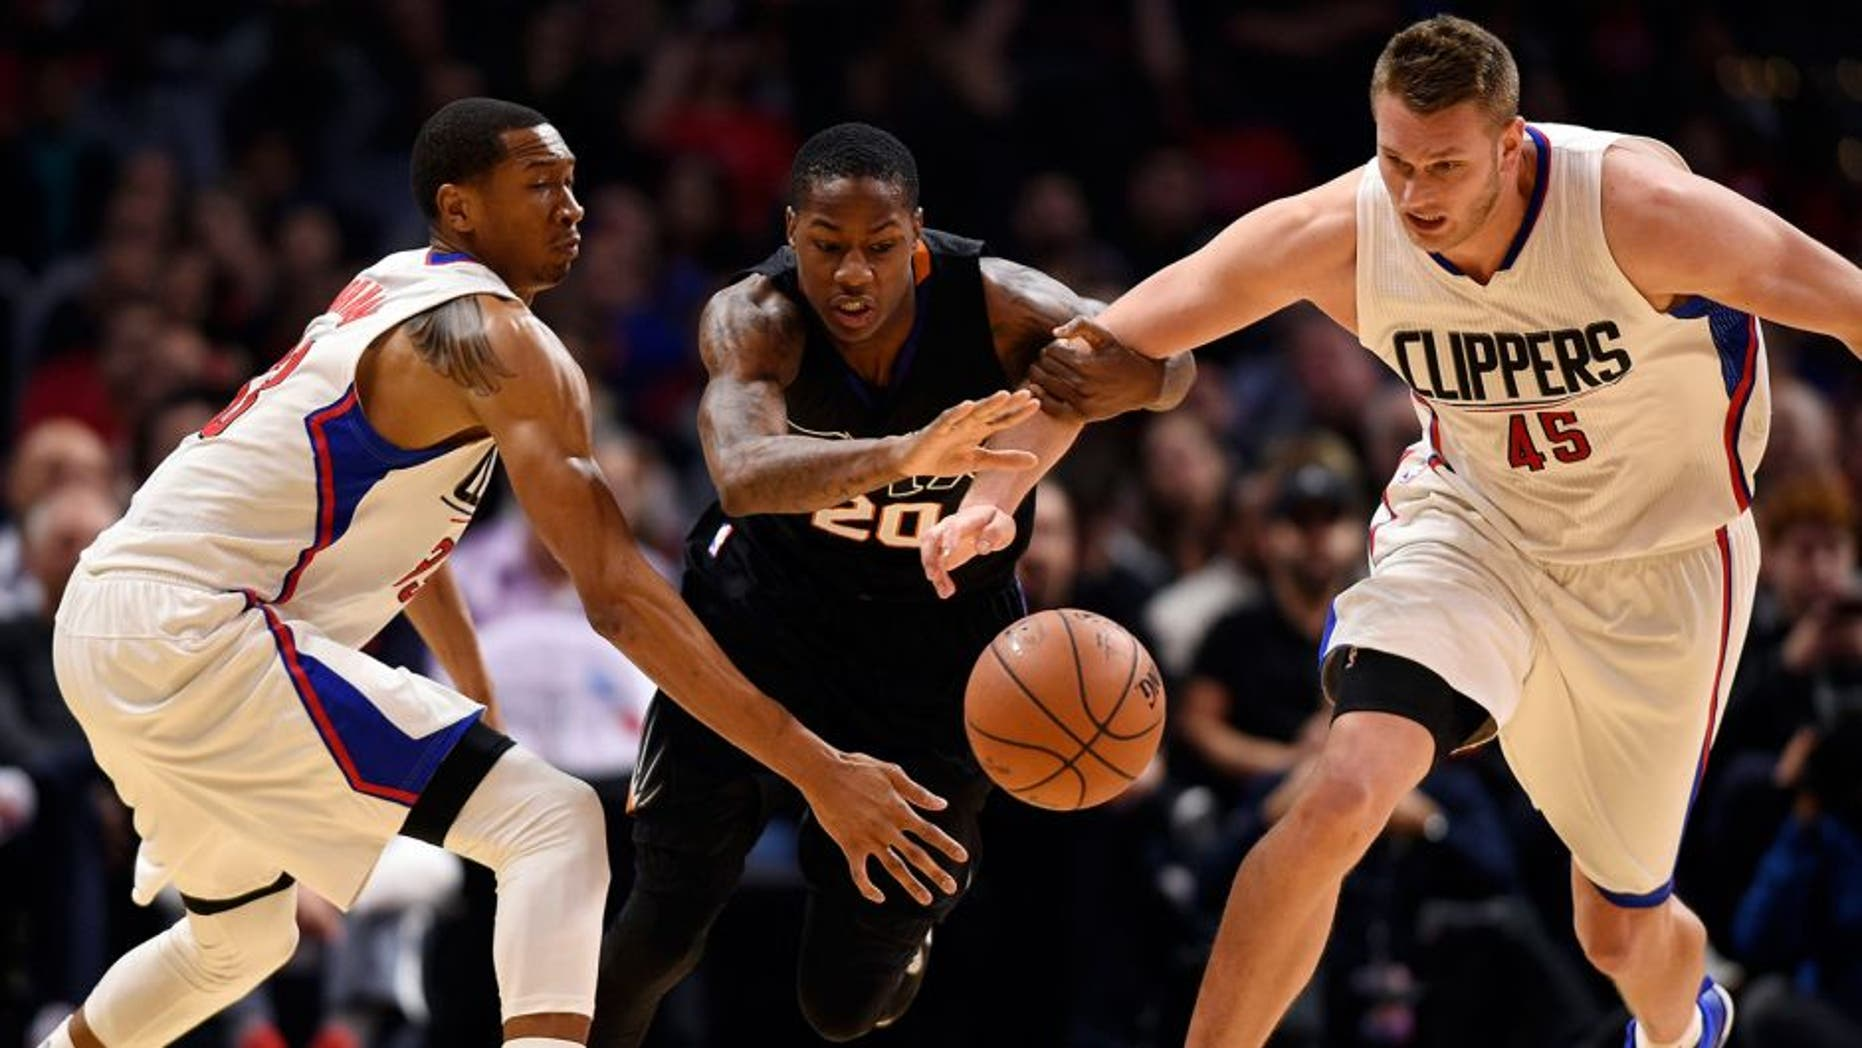 Feb 22, 2016; Los Angeles, CA, USA; Phoenix Suns guard Archie Goodwin (center) battles with Los Angeles Clippers forward Wesley Jonson (left) and center Cole Aldrich (right) for the loose ball during the fourth quarter at Staples Center. The Los Angeles Clippers won 124-84. Mandatory Credit: Kelvin Kuo-USA TODAY Sports